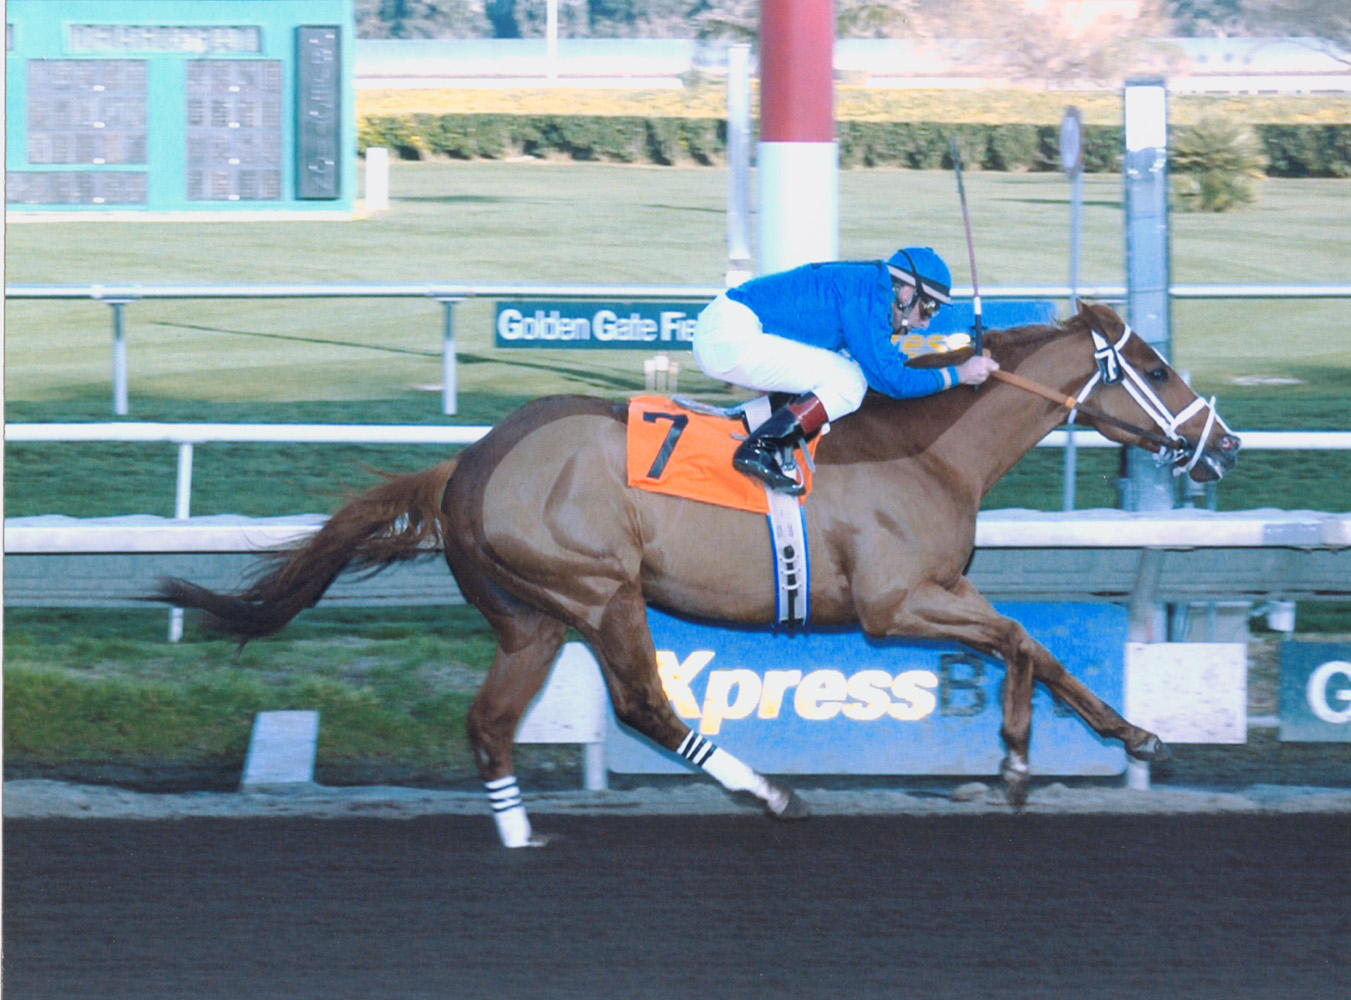 Russell Baze winning his 8,834th career race aboard Hollow Memories to surpass Bill Shoemaker and reach 2nd place on the all-time wins list for jockeys (Golden Gate Fields Photo/Museum Collection)